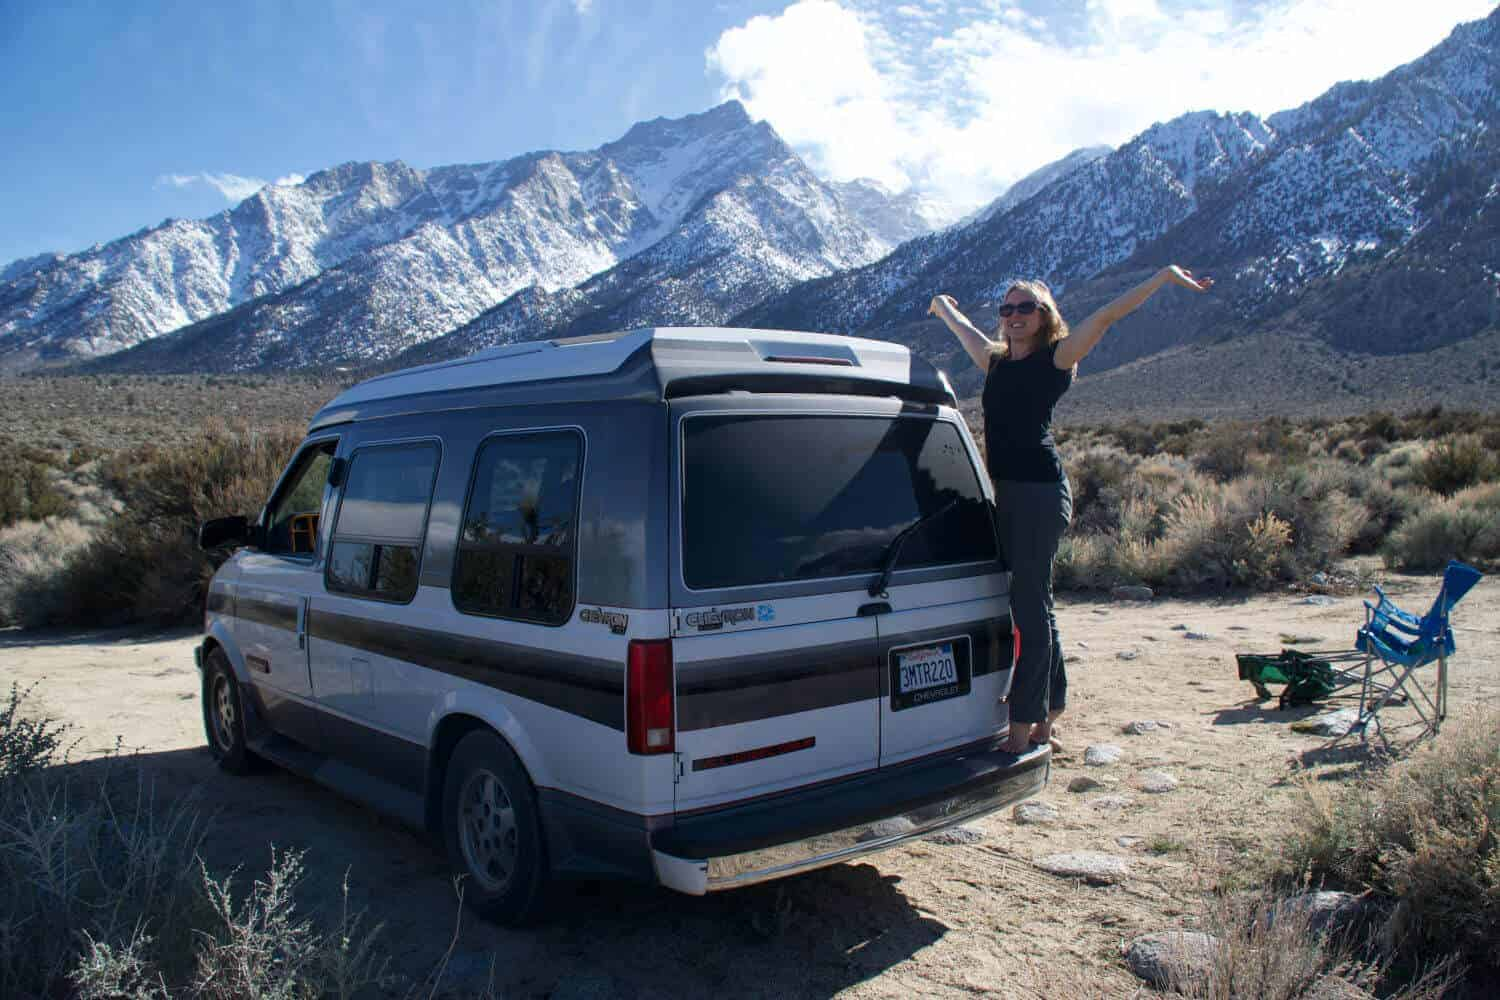 The best campervan gear in 2019 to start living the van life